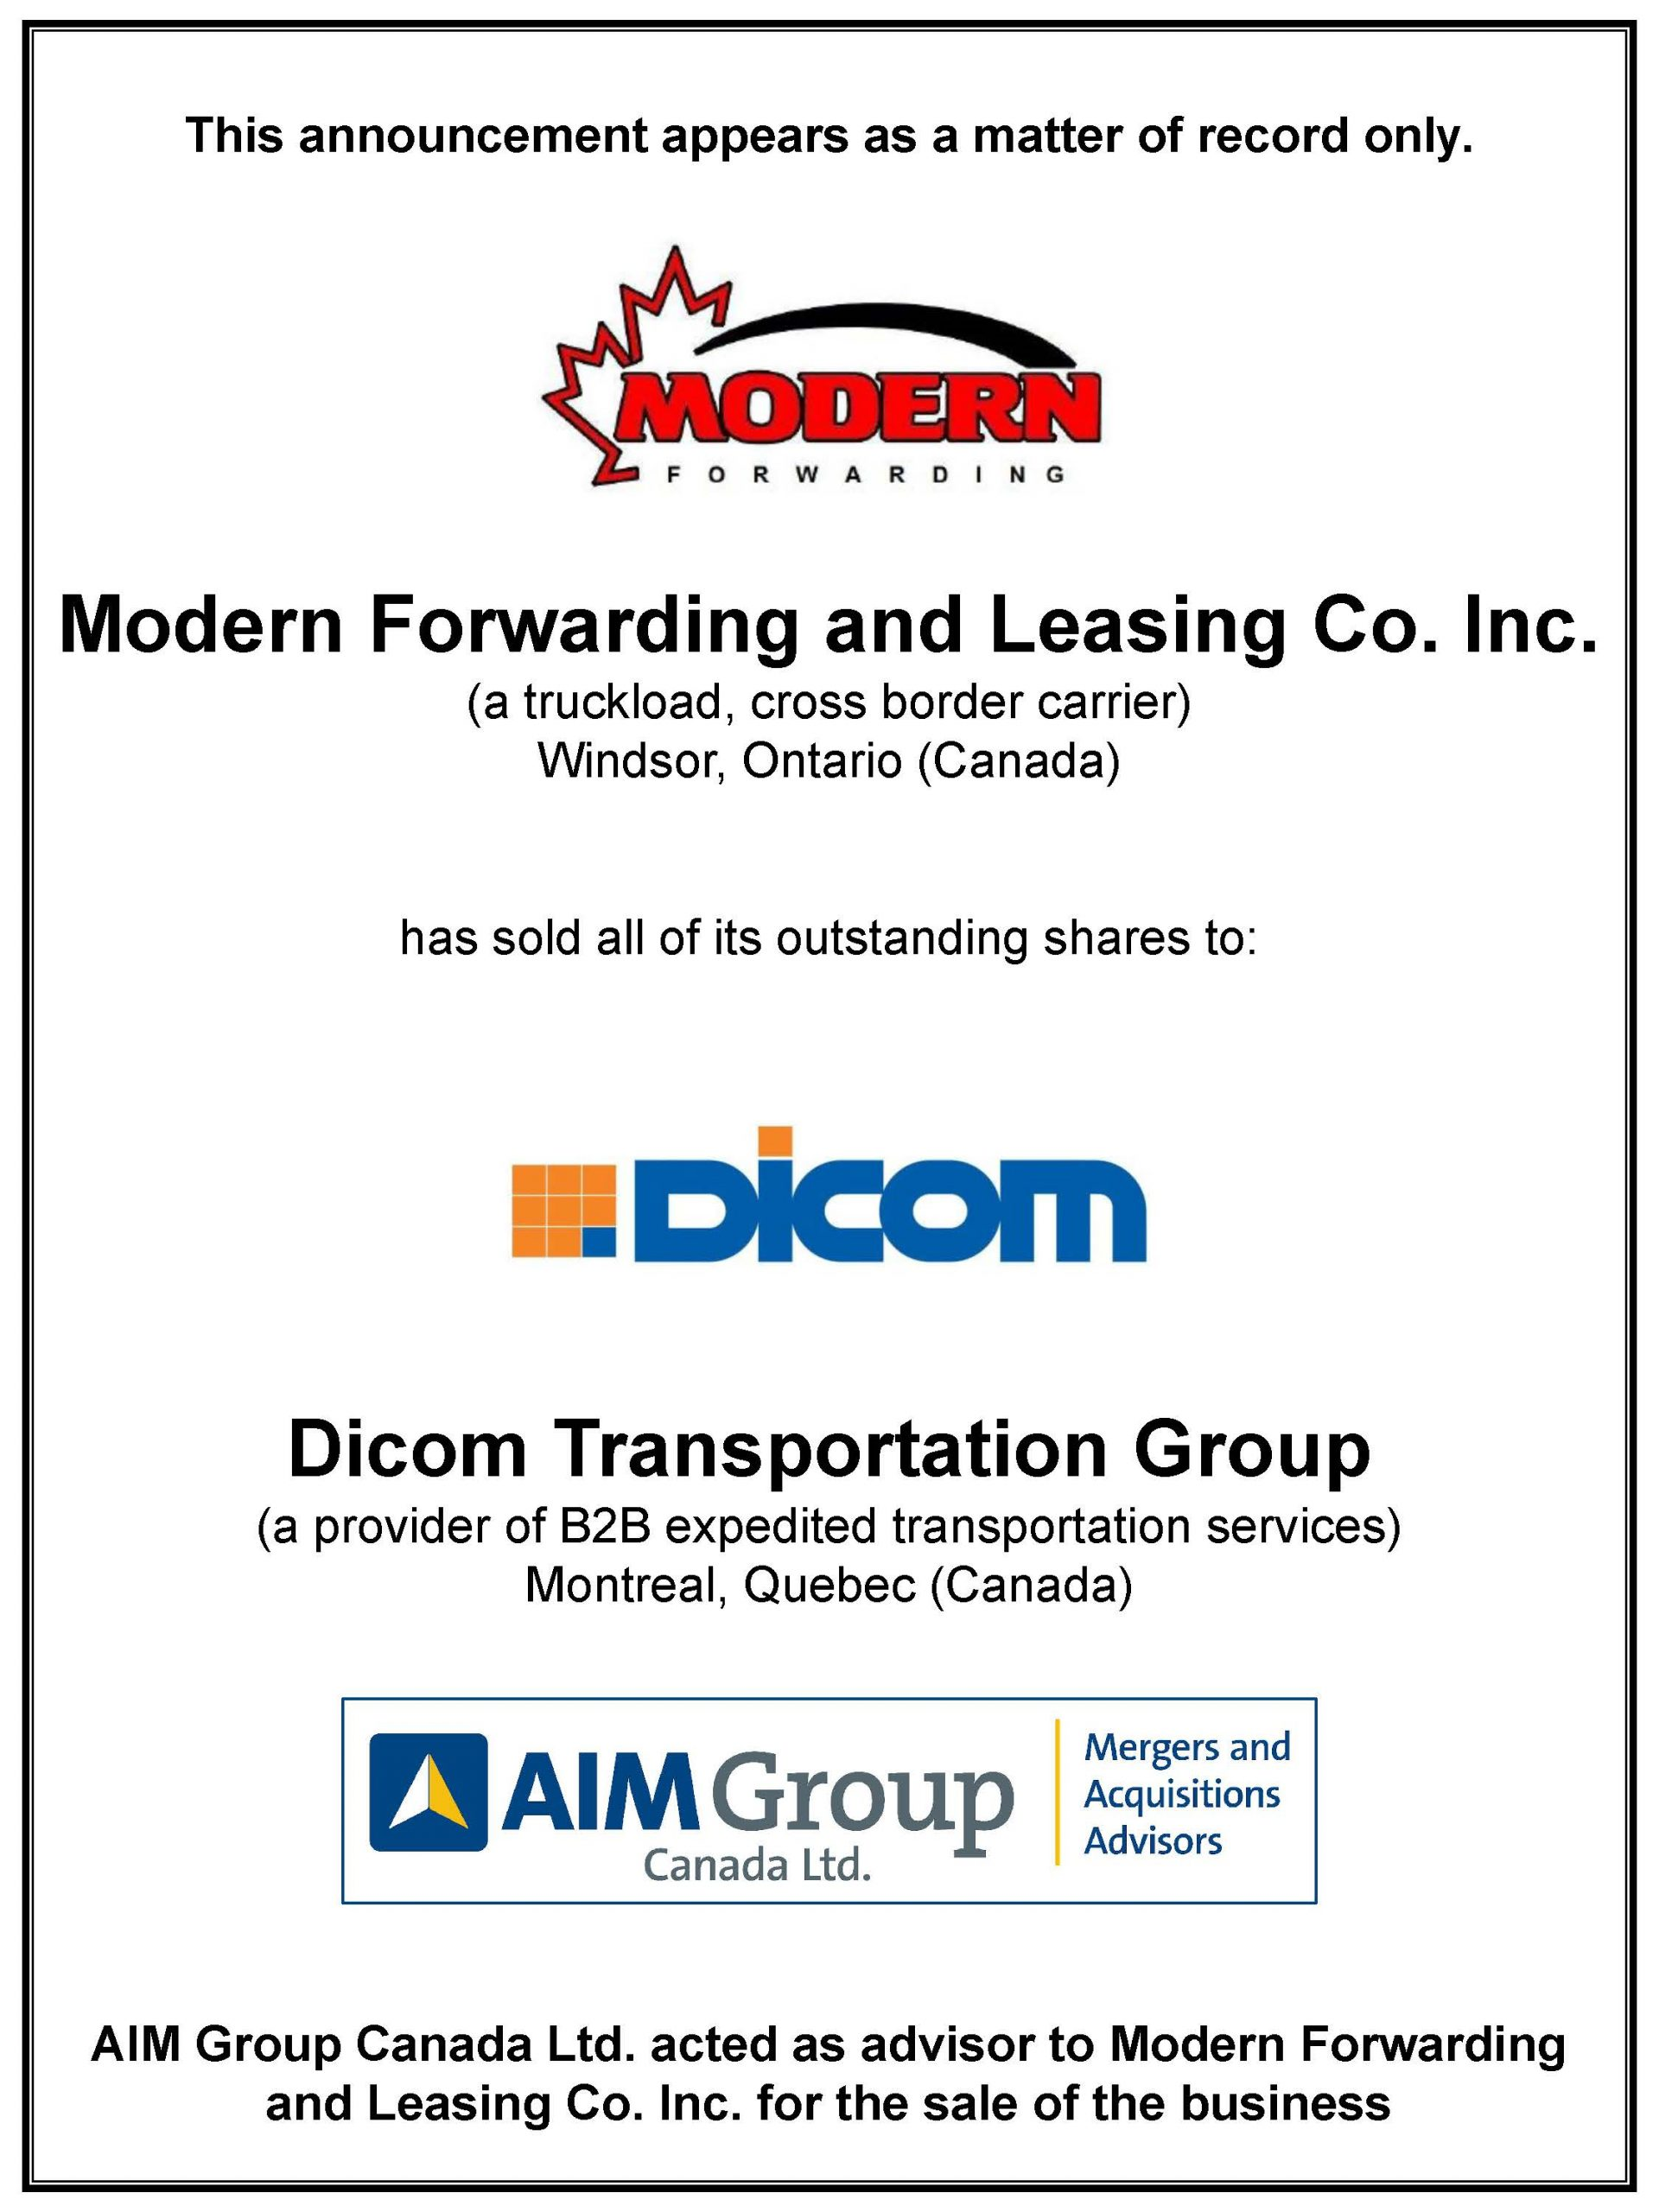 Modern Forwarding and Leasing Co. Inc.